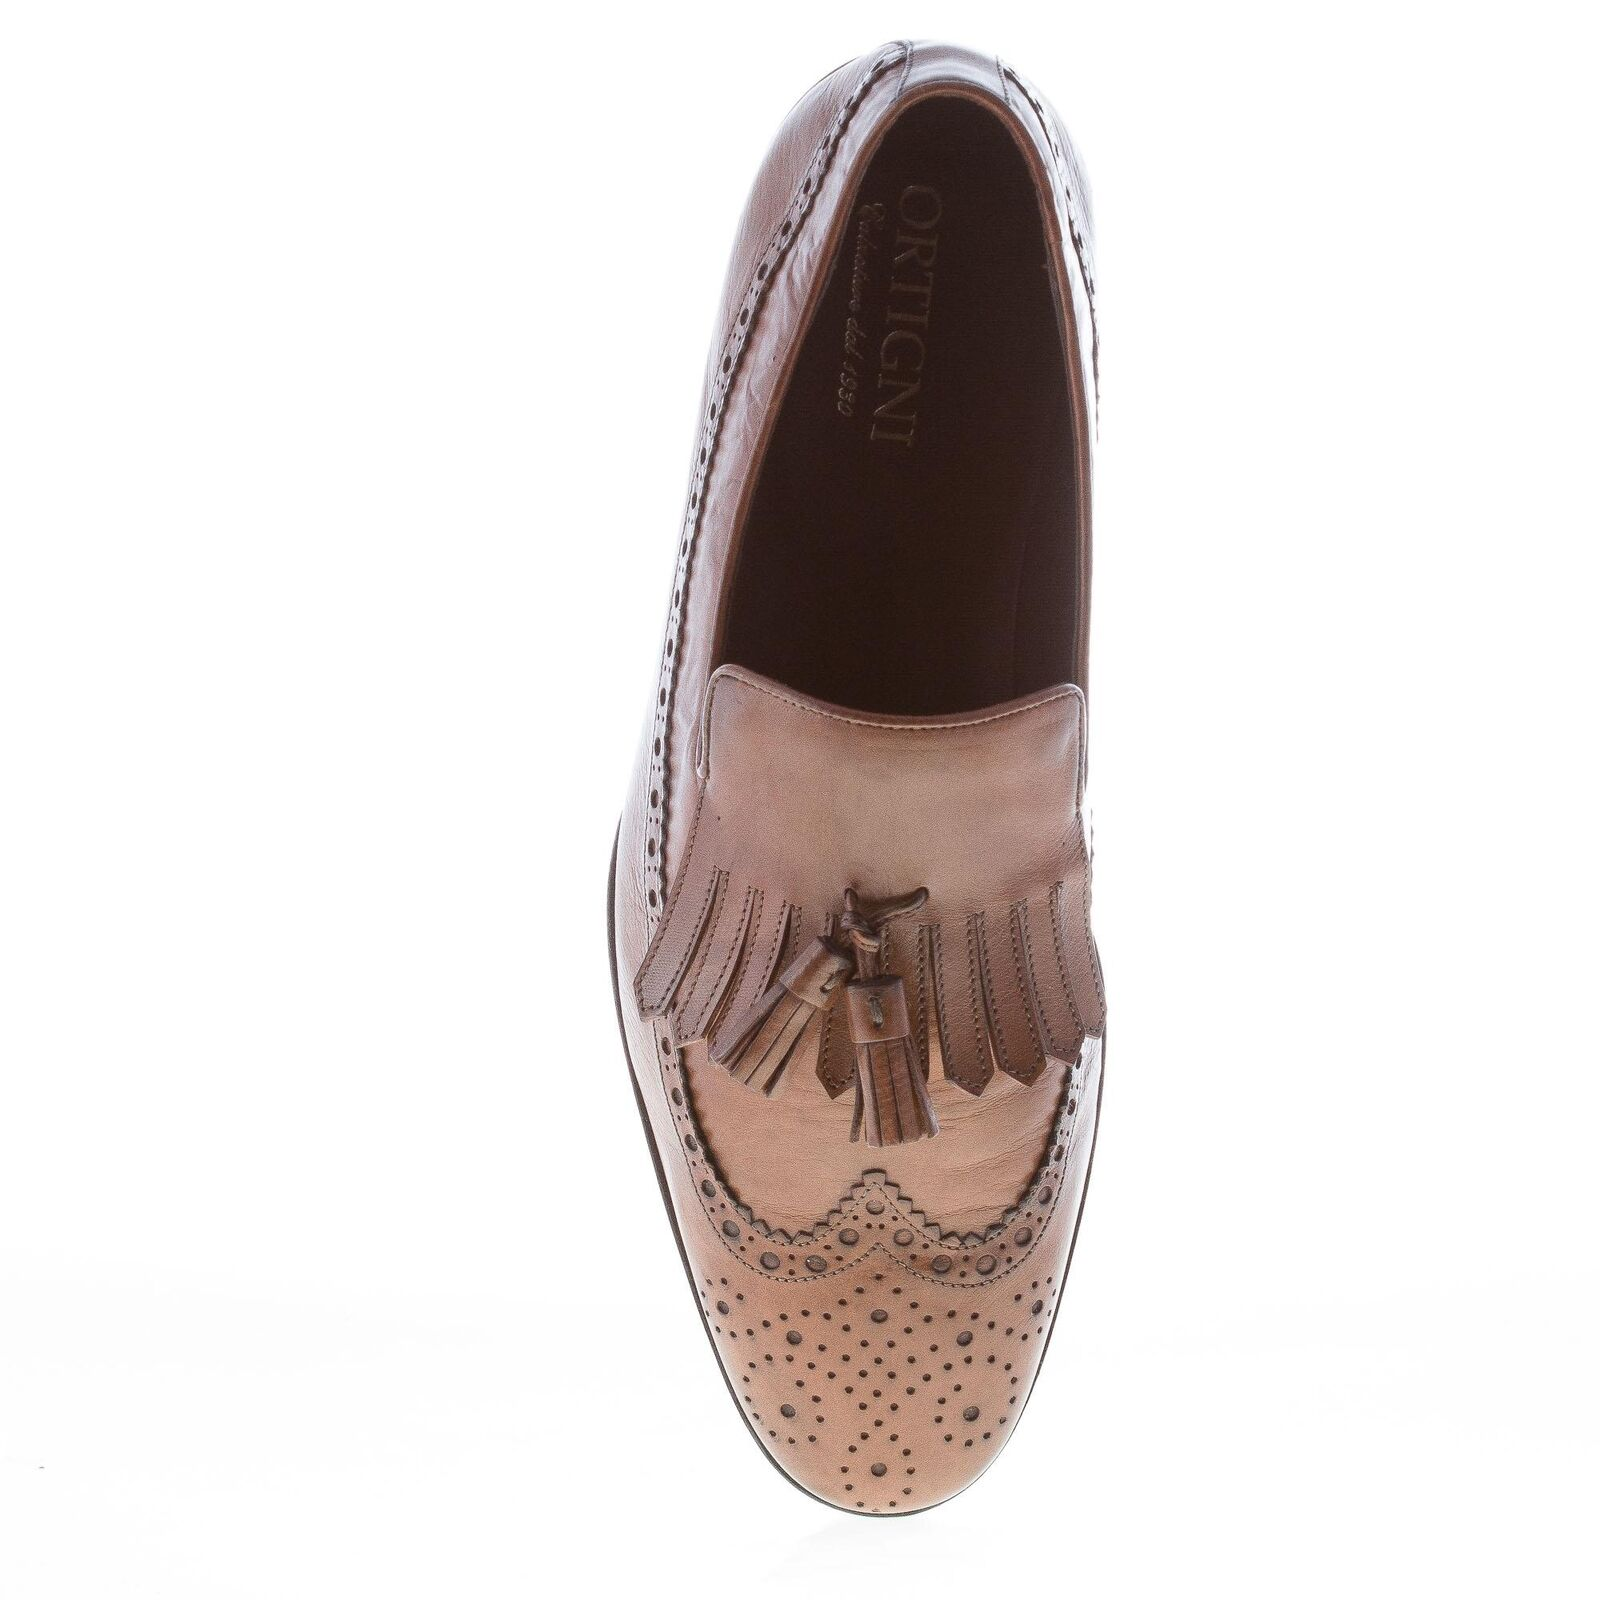 ORTIGNI men schuhe Natural taupe made leather loafer fringe and tassels made taupe in  8c6836